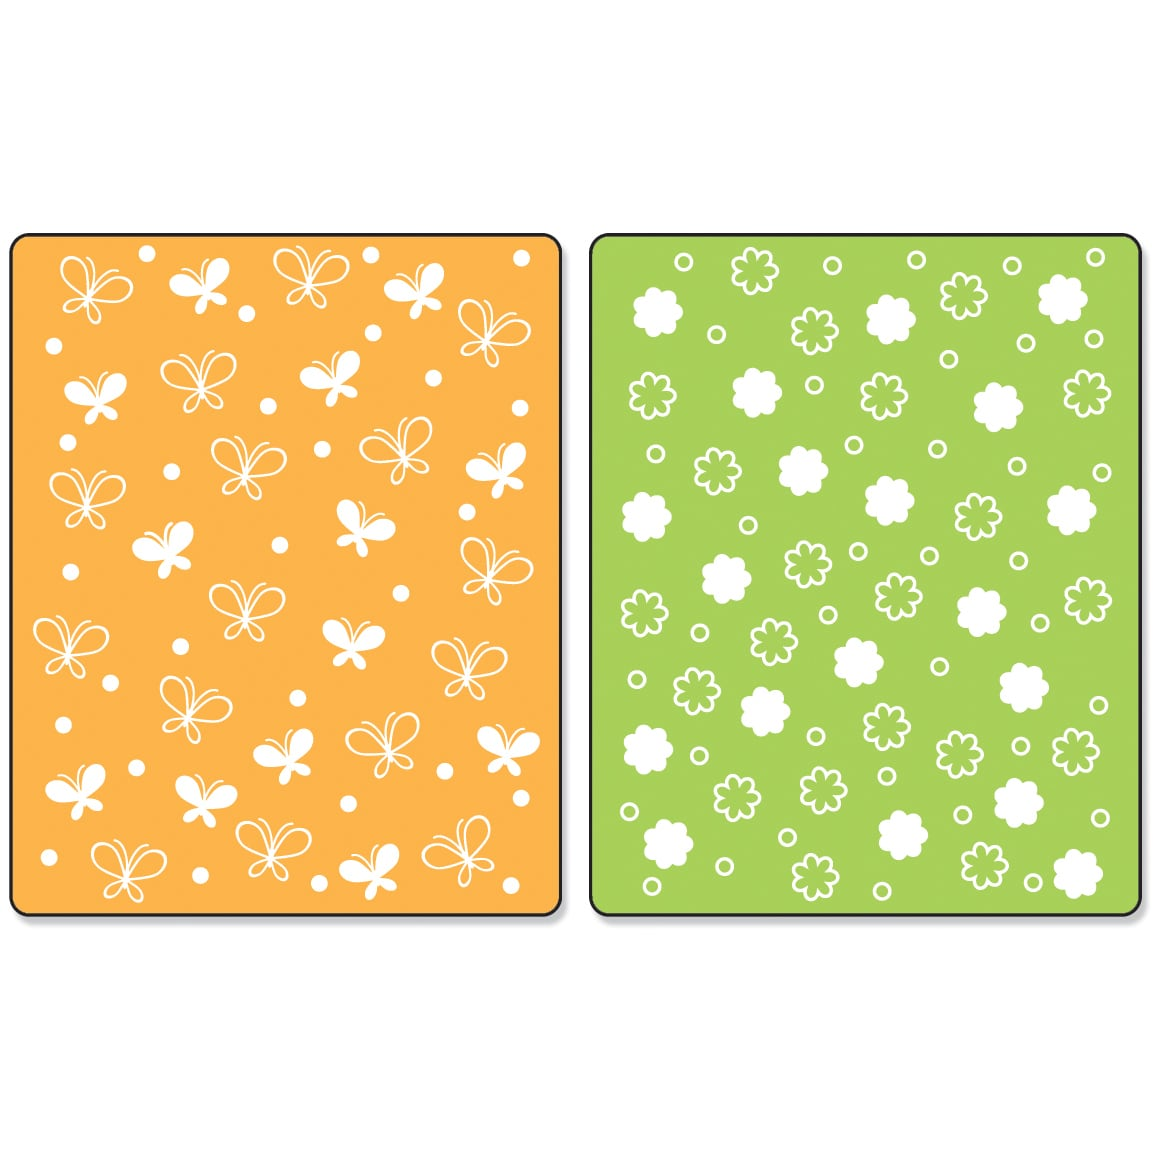 Sizzix Textured Impressions A2 Embossing Folders 2/PkgBut...